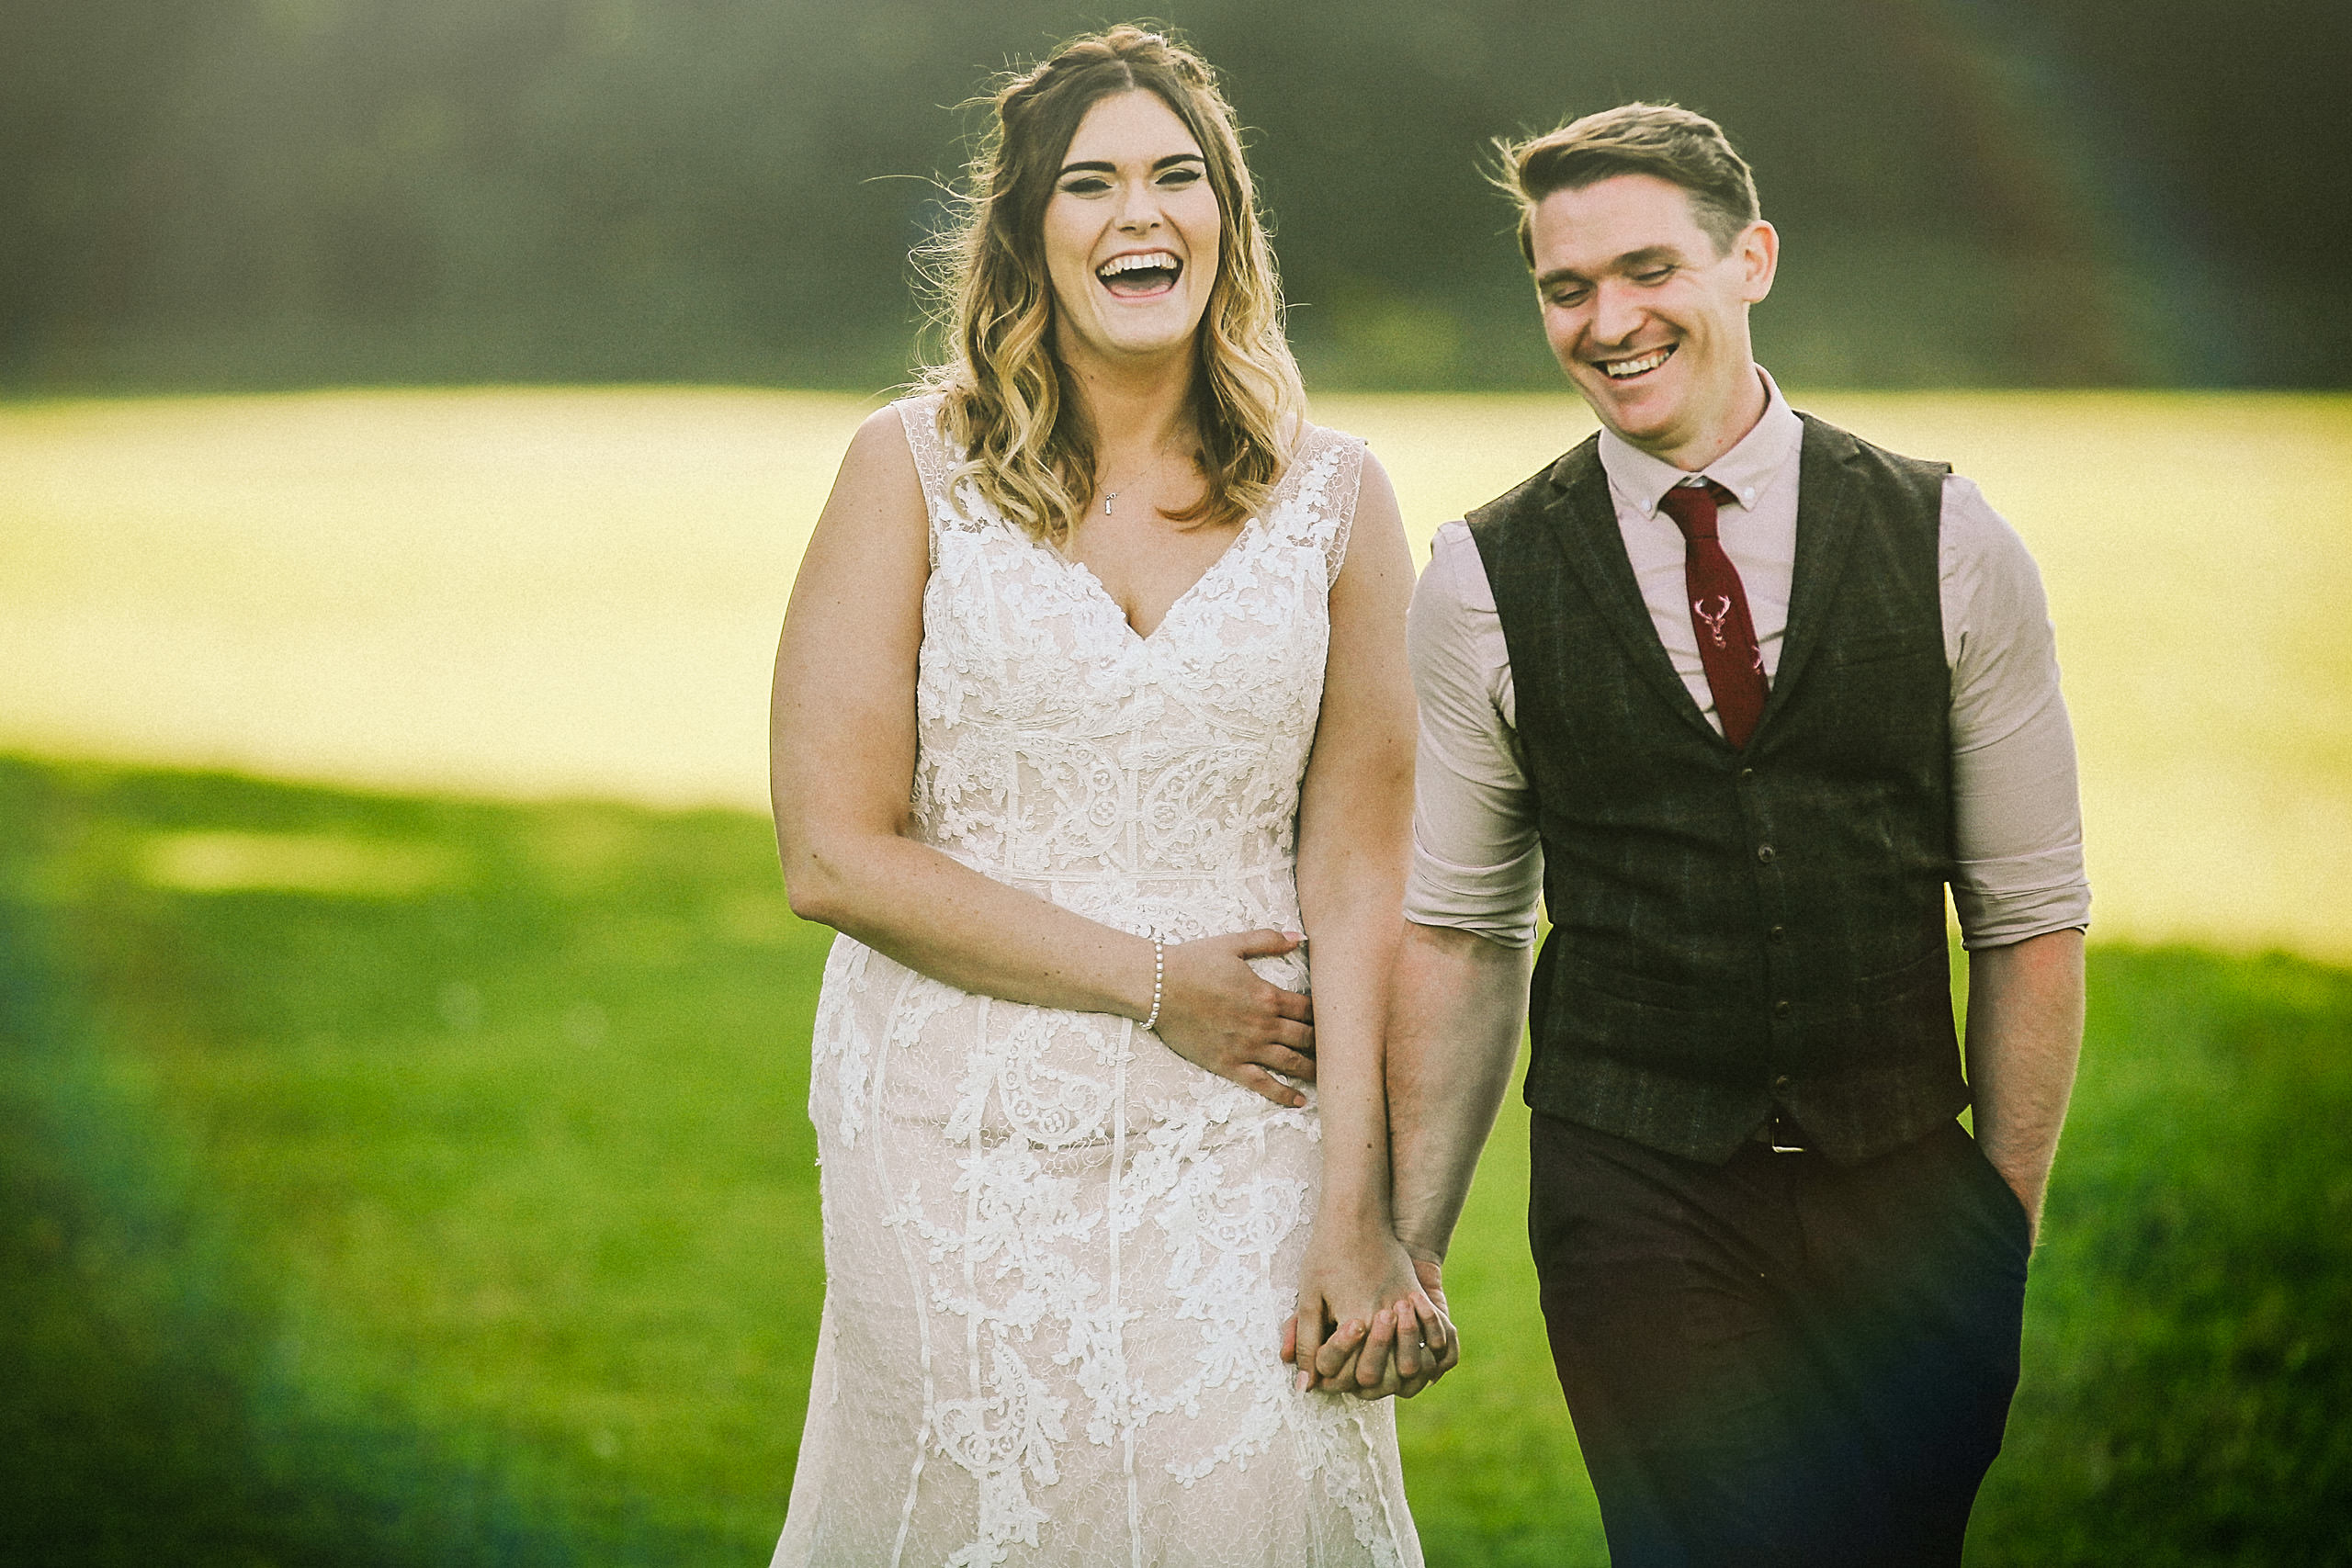 Bride and groom laughing walking outside during Rustic wedding at Meols Hall Southport